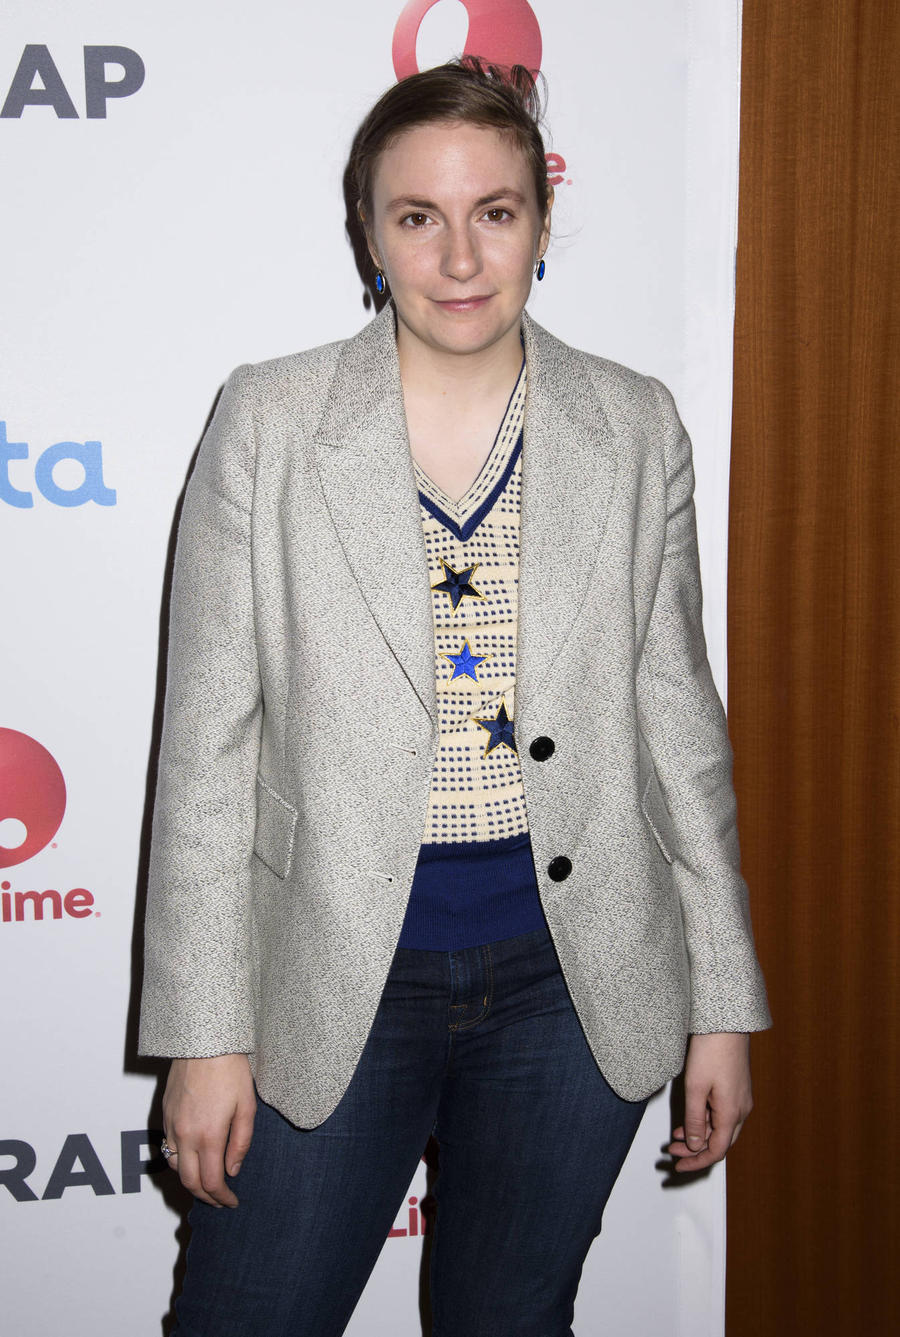 Lena Dunham Honours Skateboarding Icon With New Tattoo